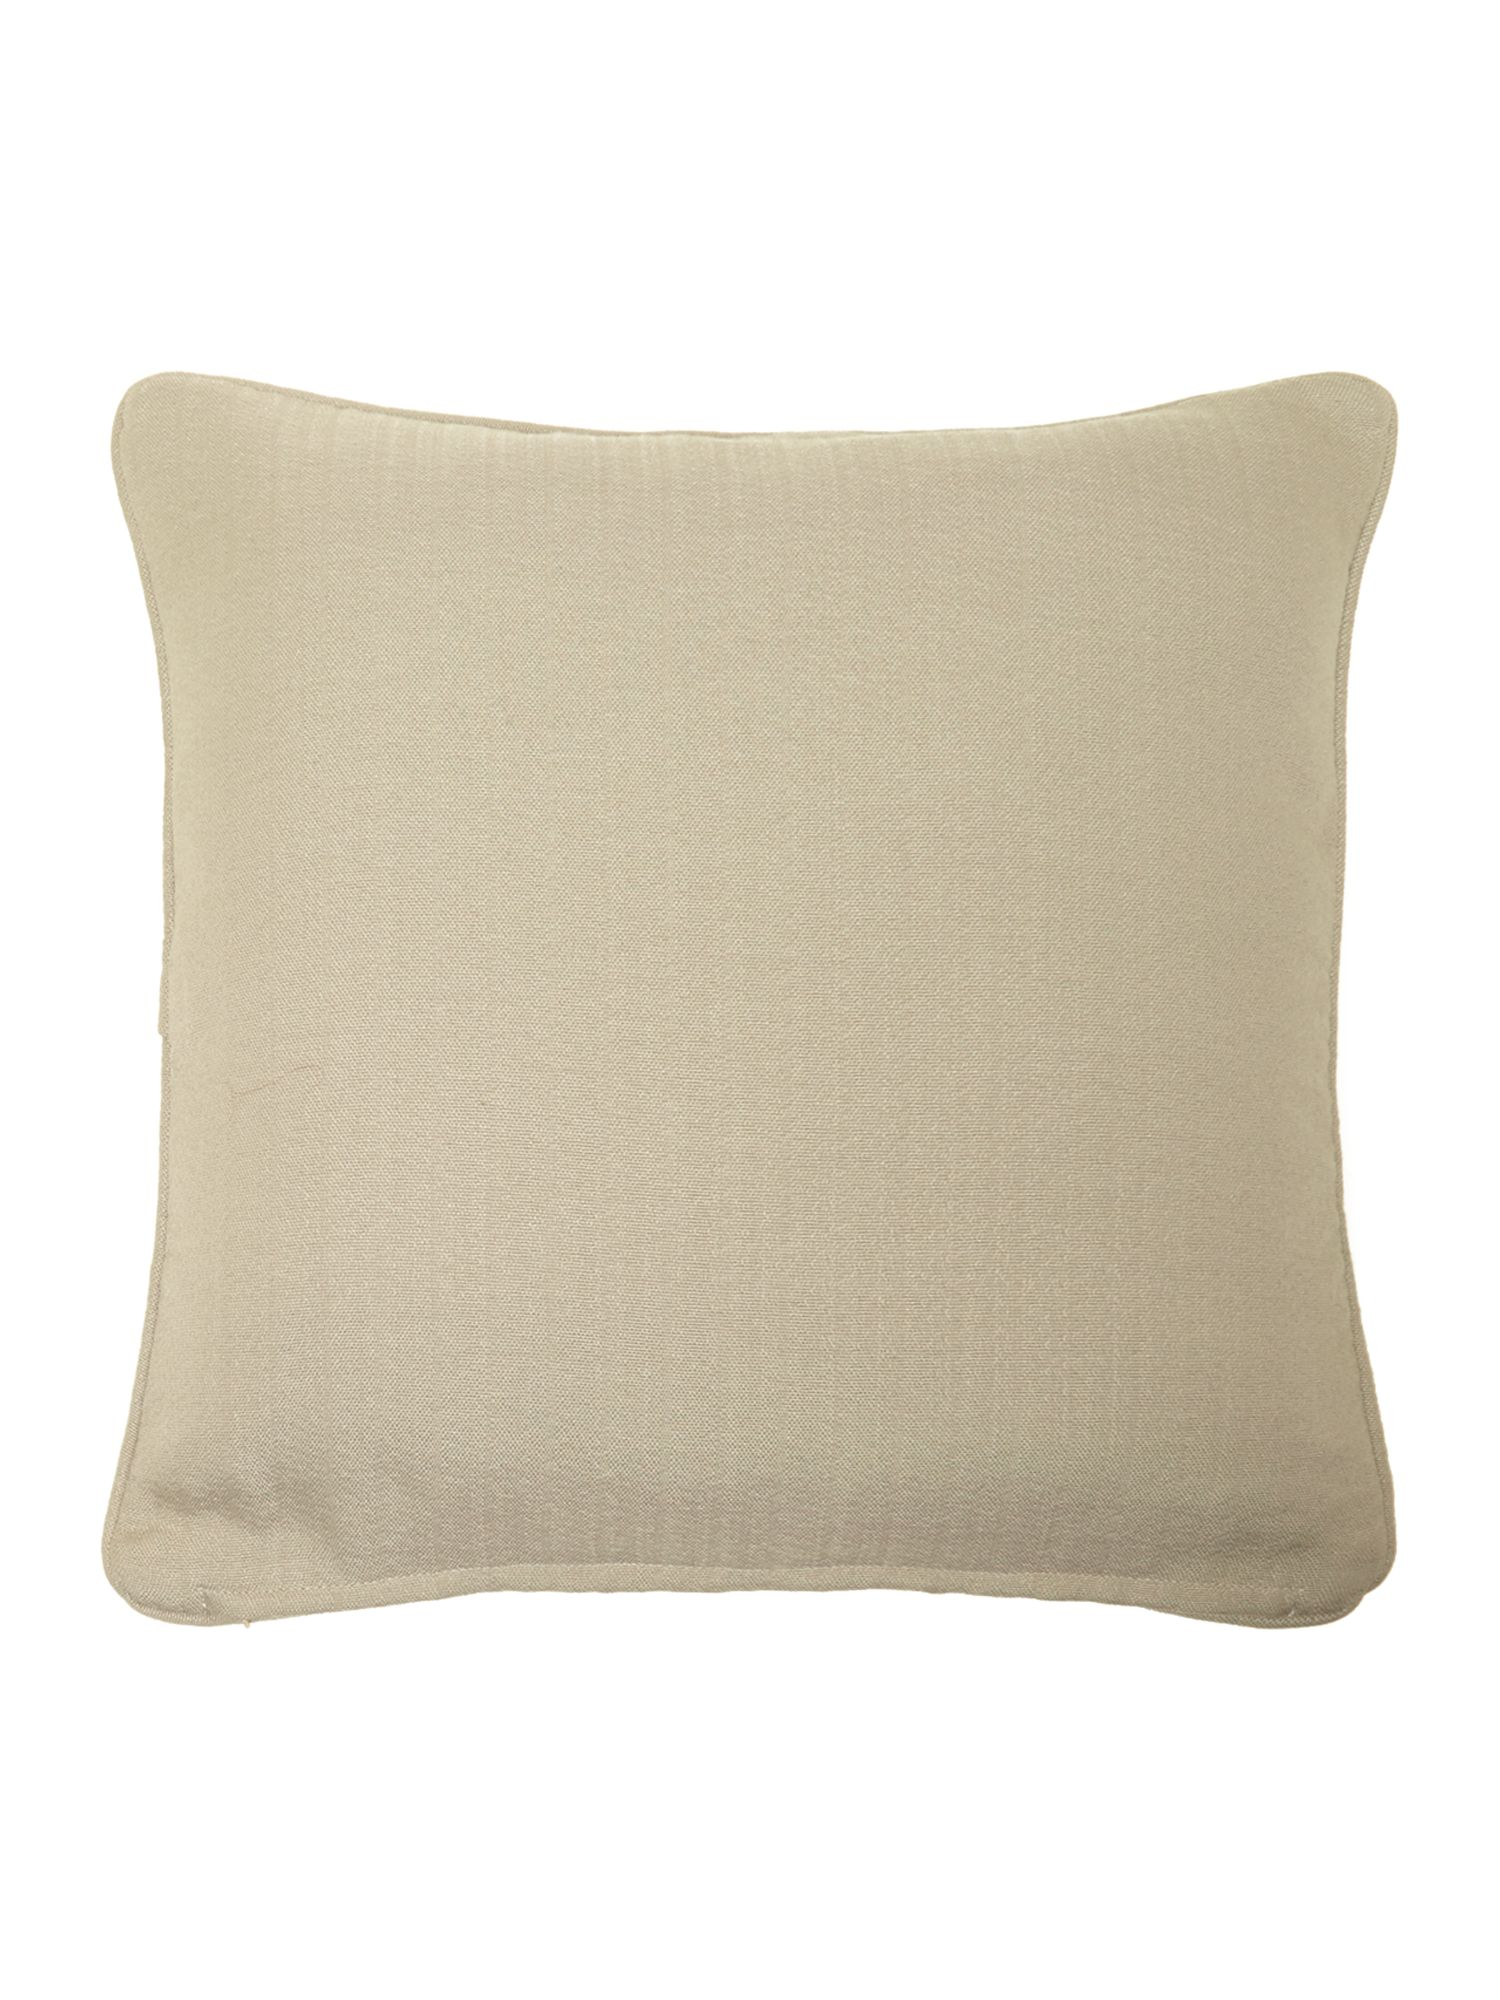 Duck egg leaf chenille cushion